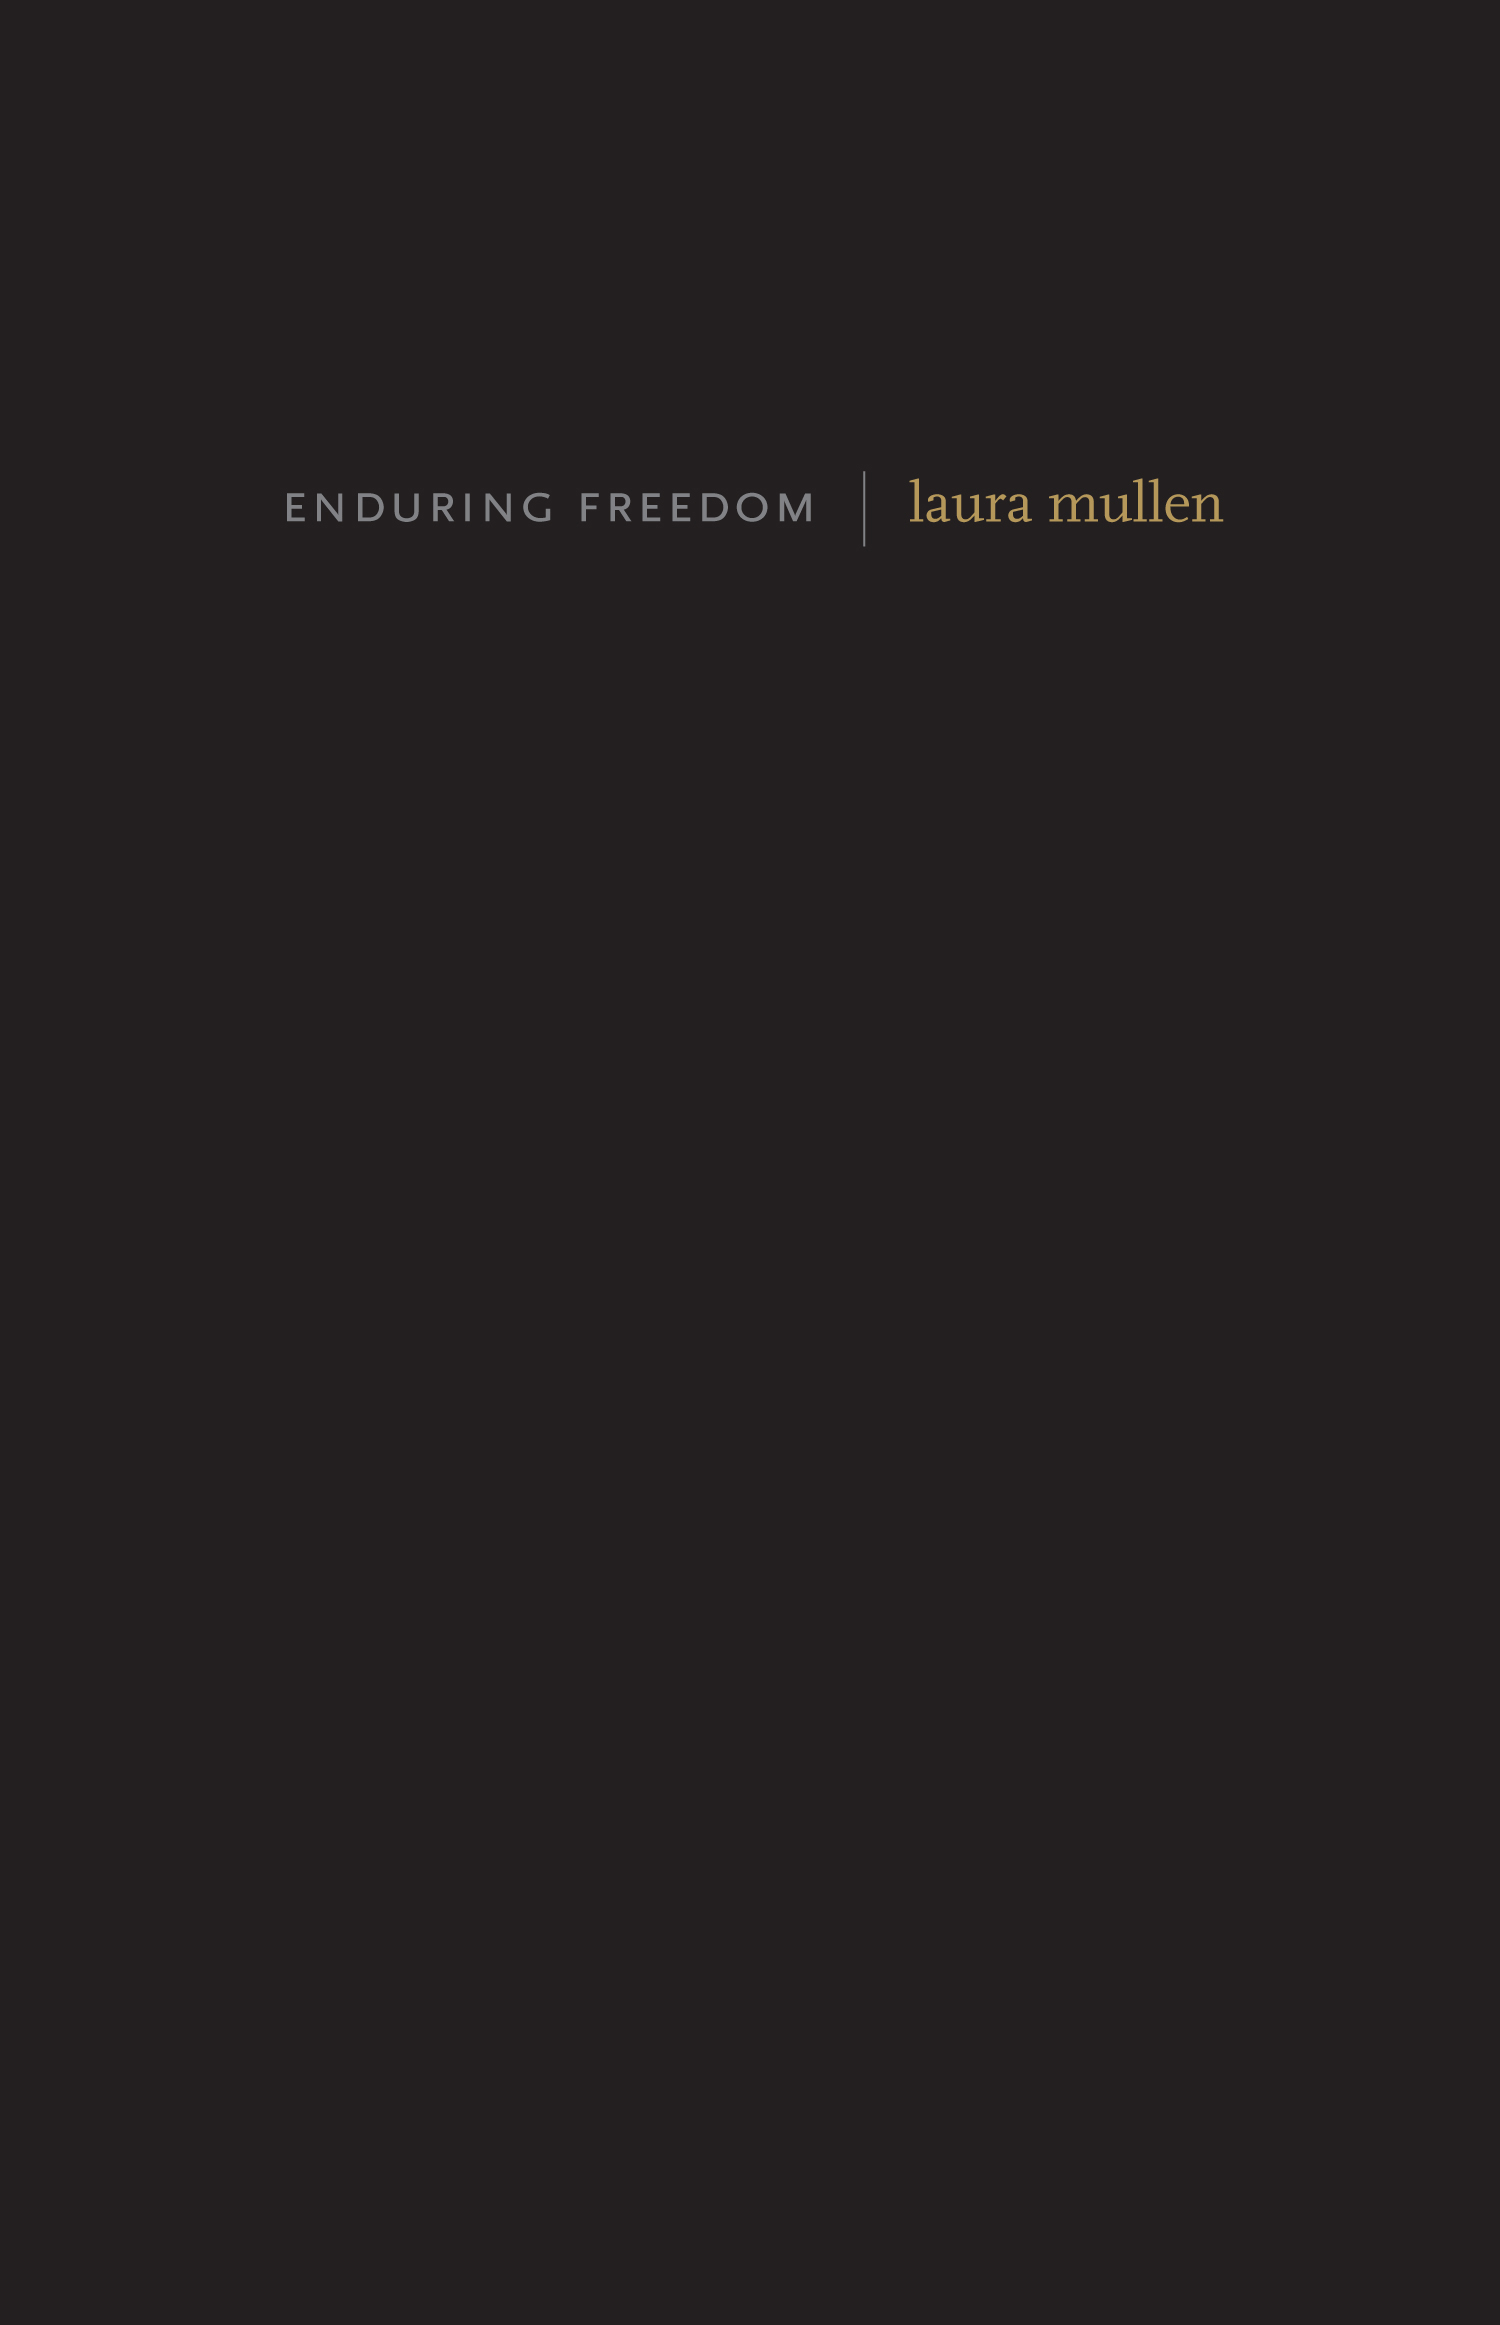 Enduring Freedom | Laura Mullen | Otis Books | Seismicity Editions